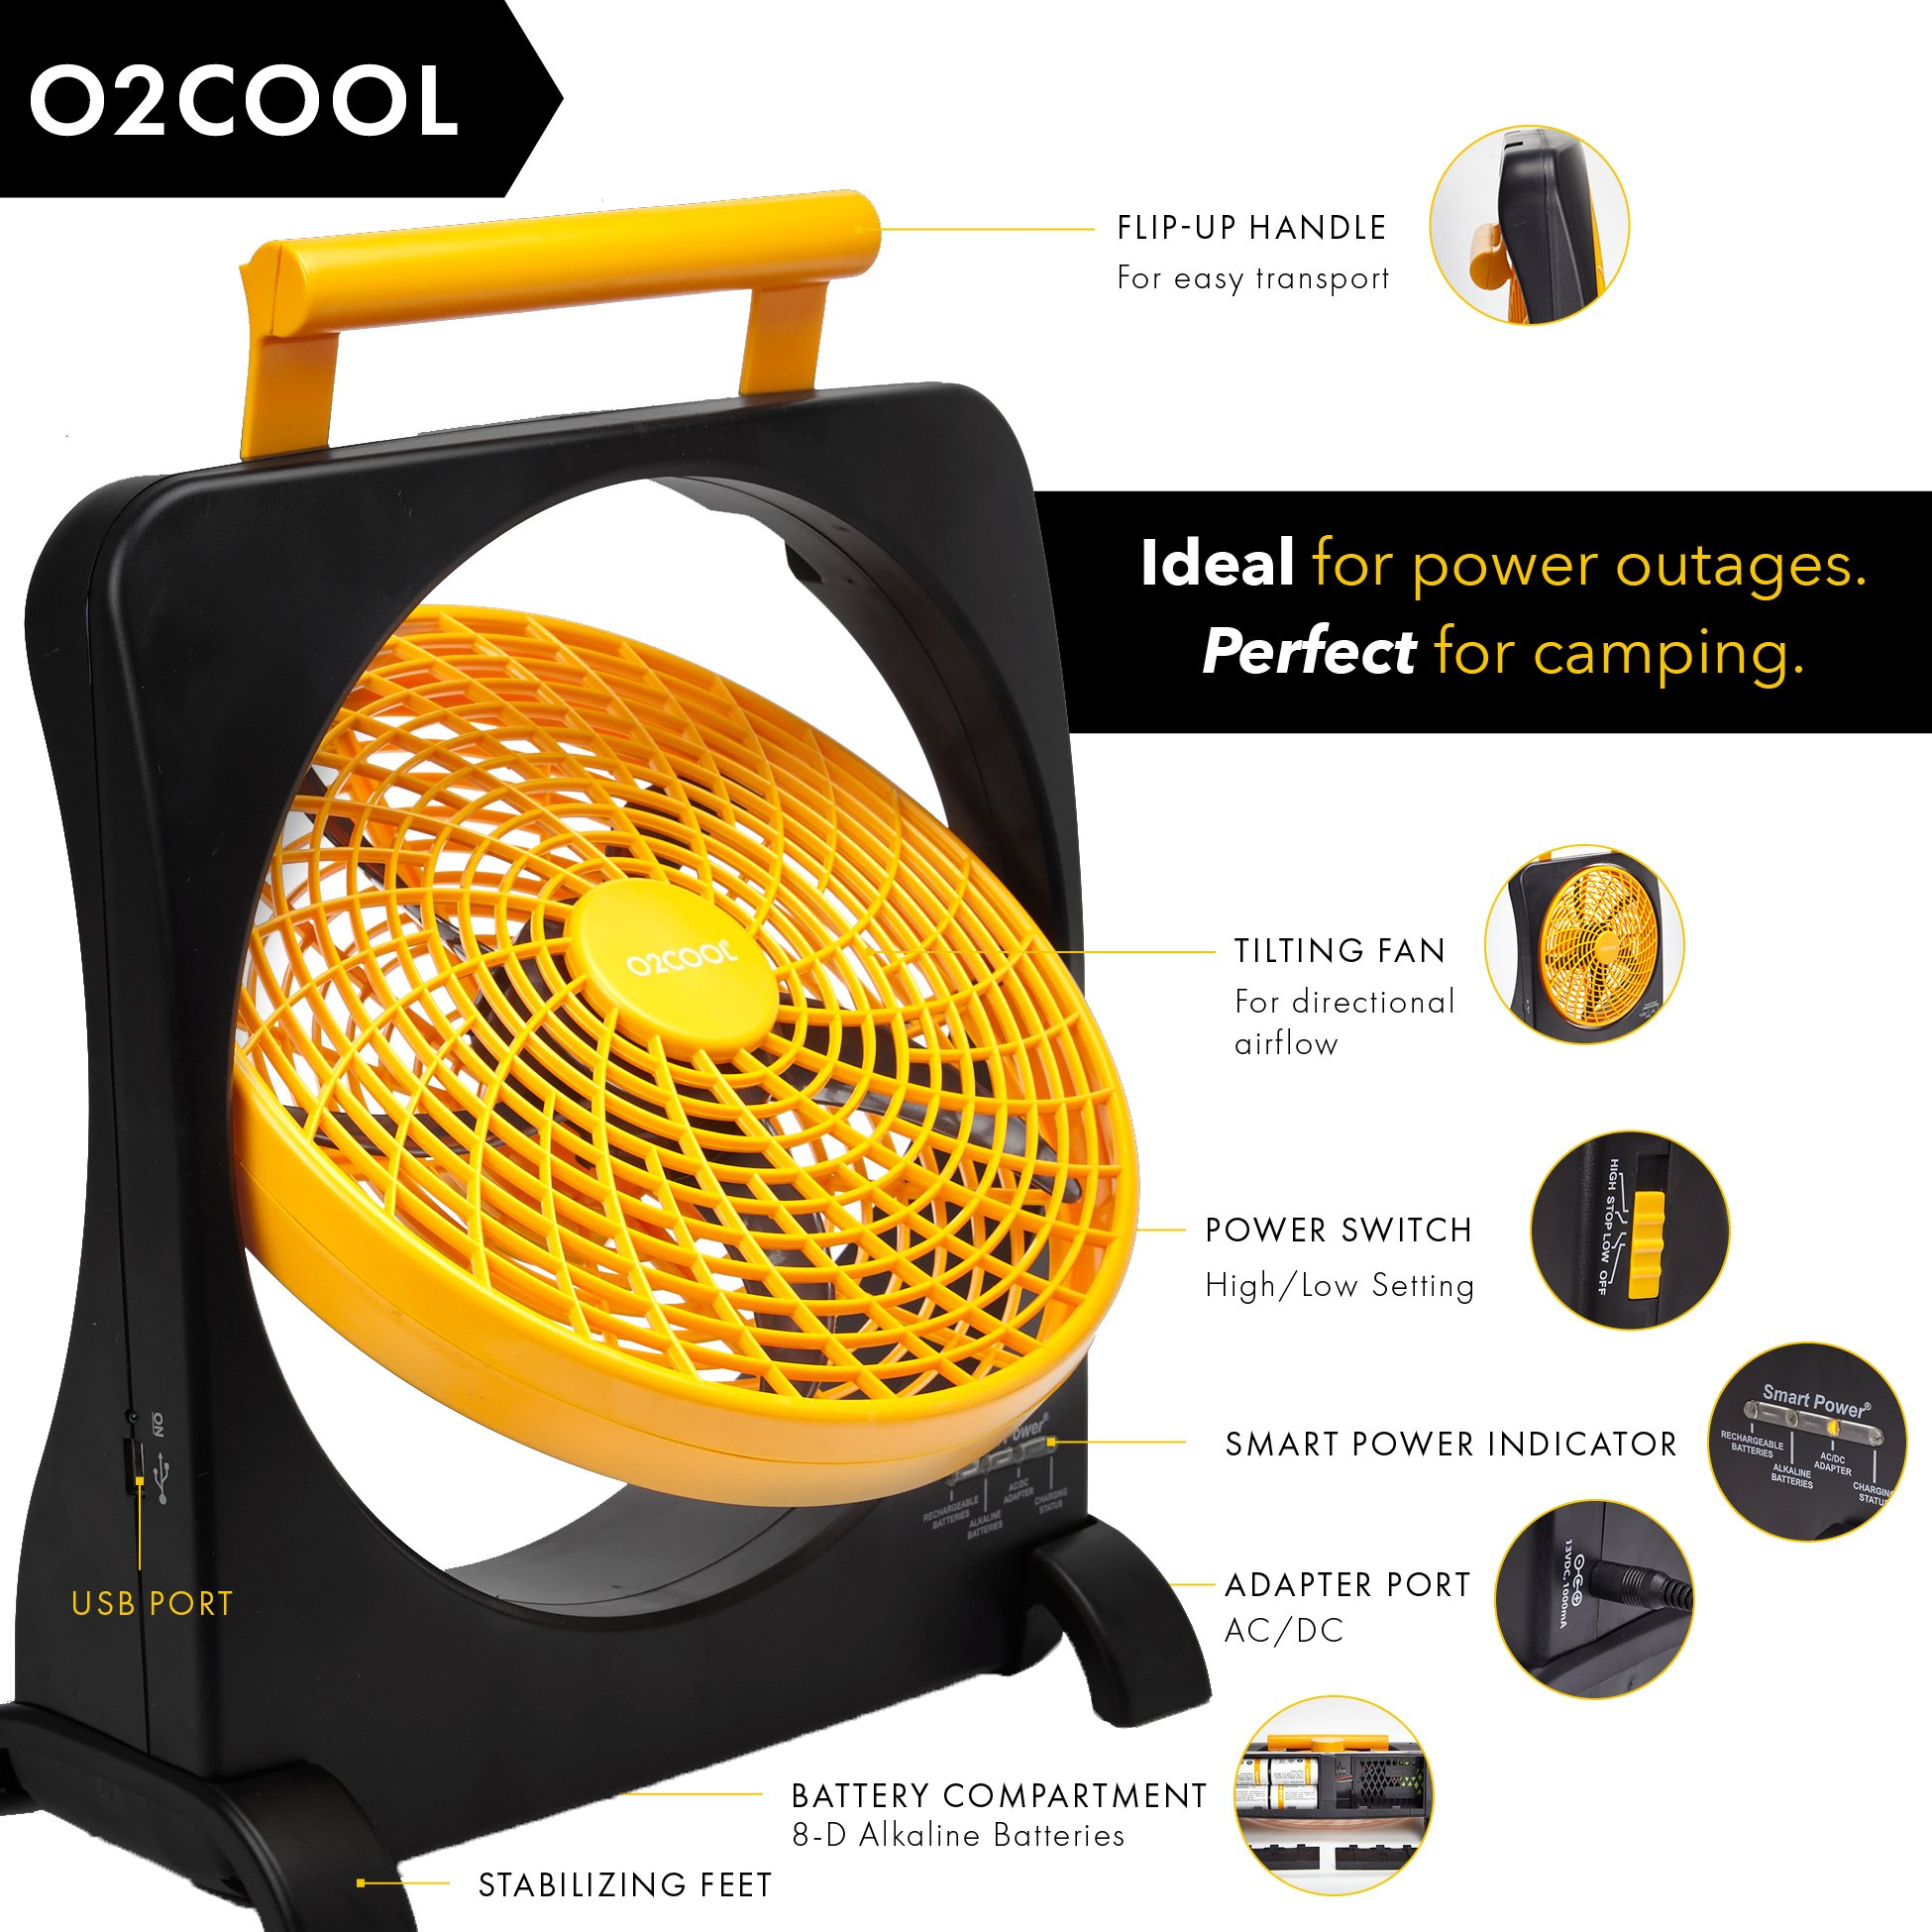 """O2COOL 10"""" Battery Operated Fan - Portable Smart Power Fan with AC Adapter & USB Charging Port for Emergencies, Camping & Travel Use (Orange) by O2COOL (Image #4)"""